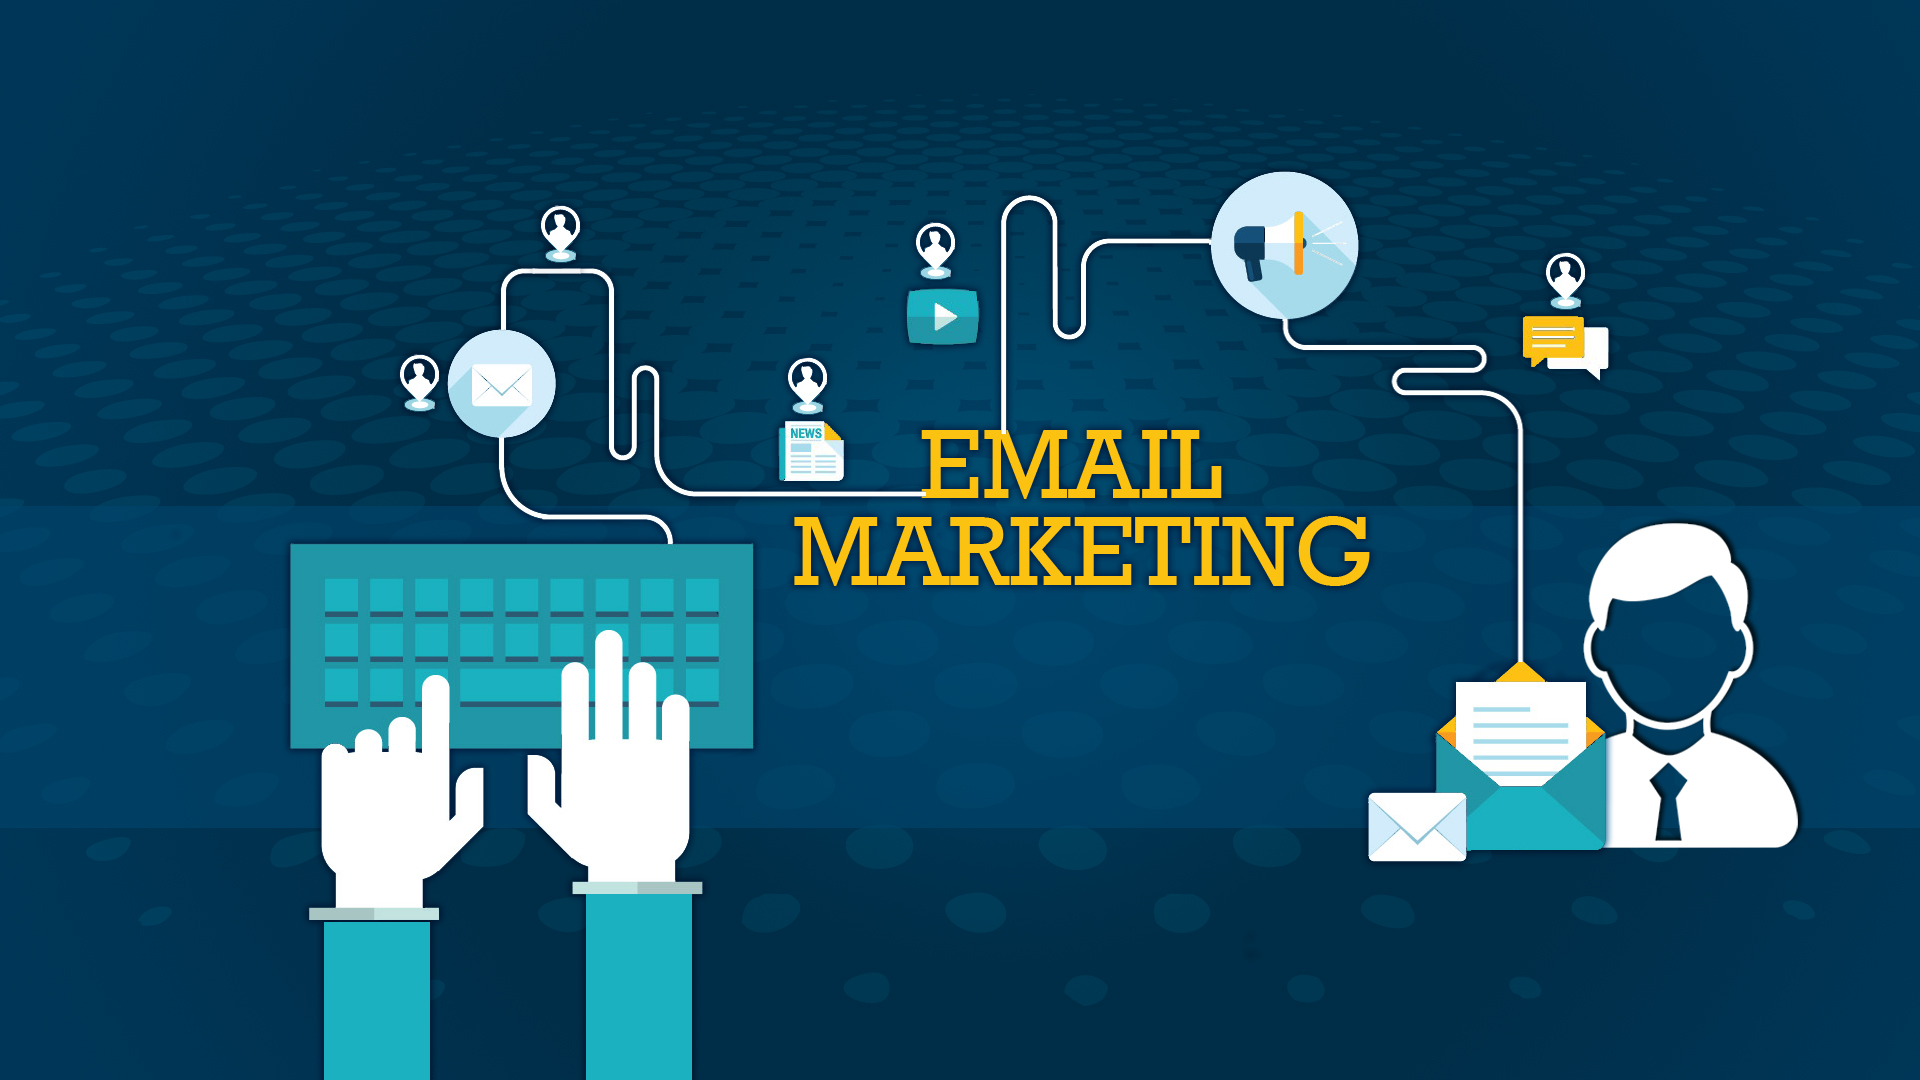 Your Email Marketing Campaign: Smart Automation can Help | Giveffect Blog